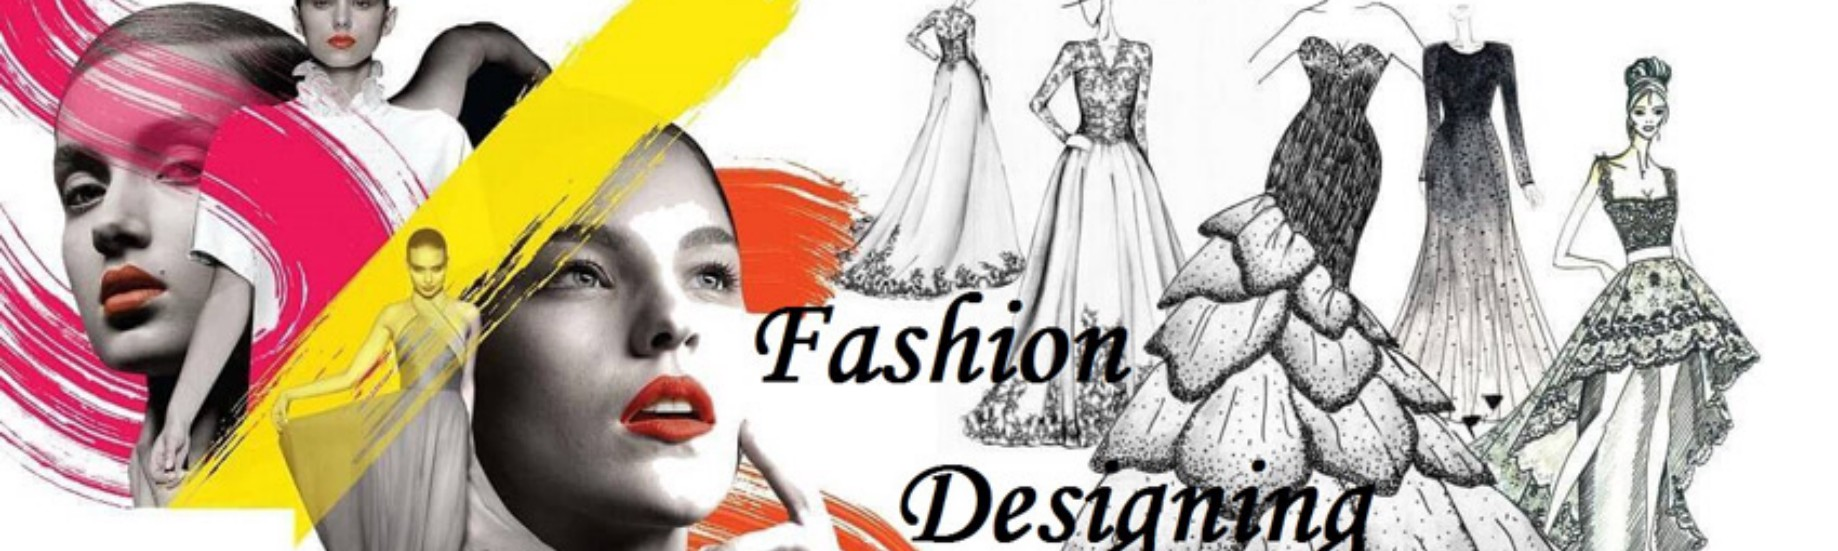 Minerva Fashion Institute Fashion Designing Journalism Animation Course Dehradun By Anand Mishra Medium